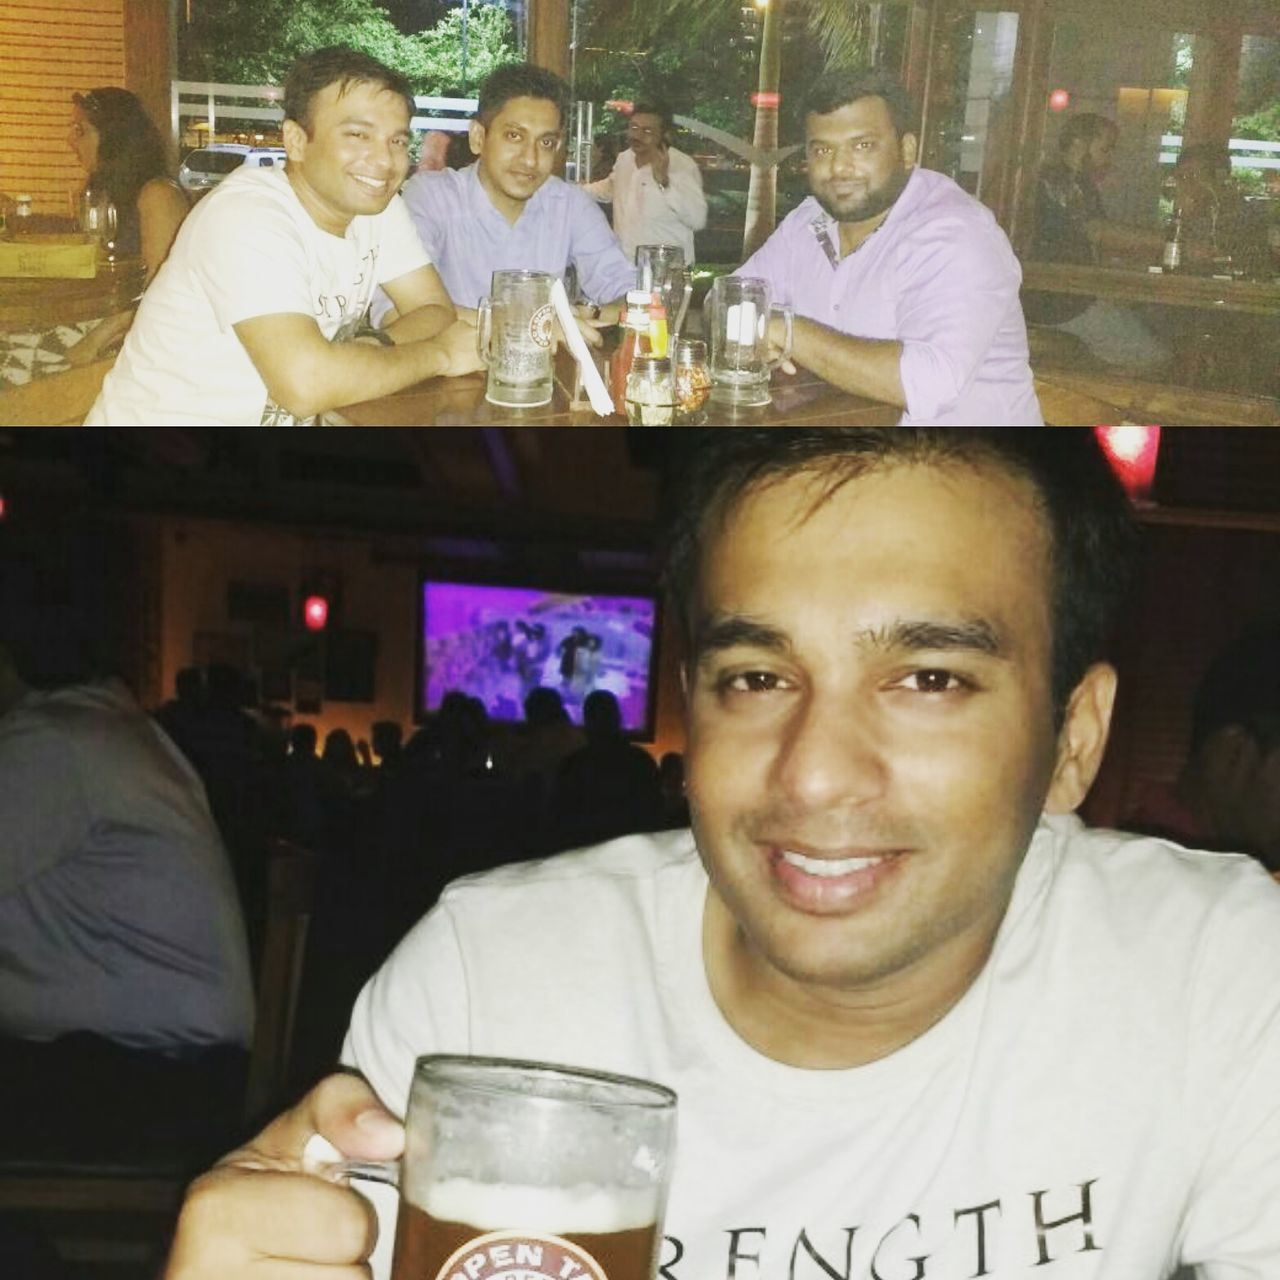 hangout with bro Enjoying Life Drinking Beer Chilling Relaxing